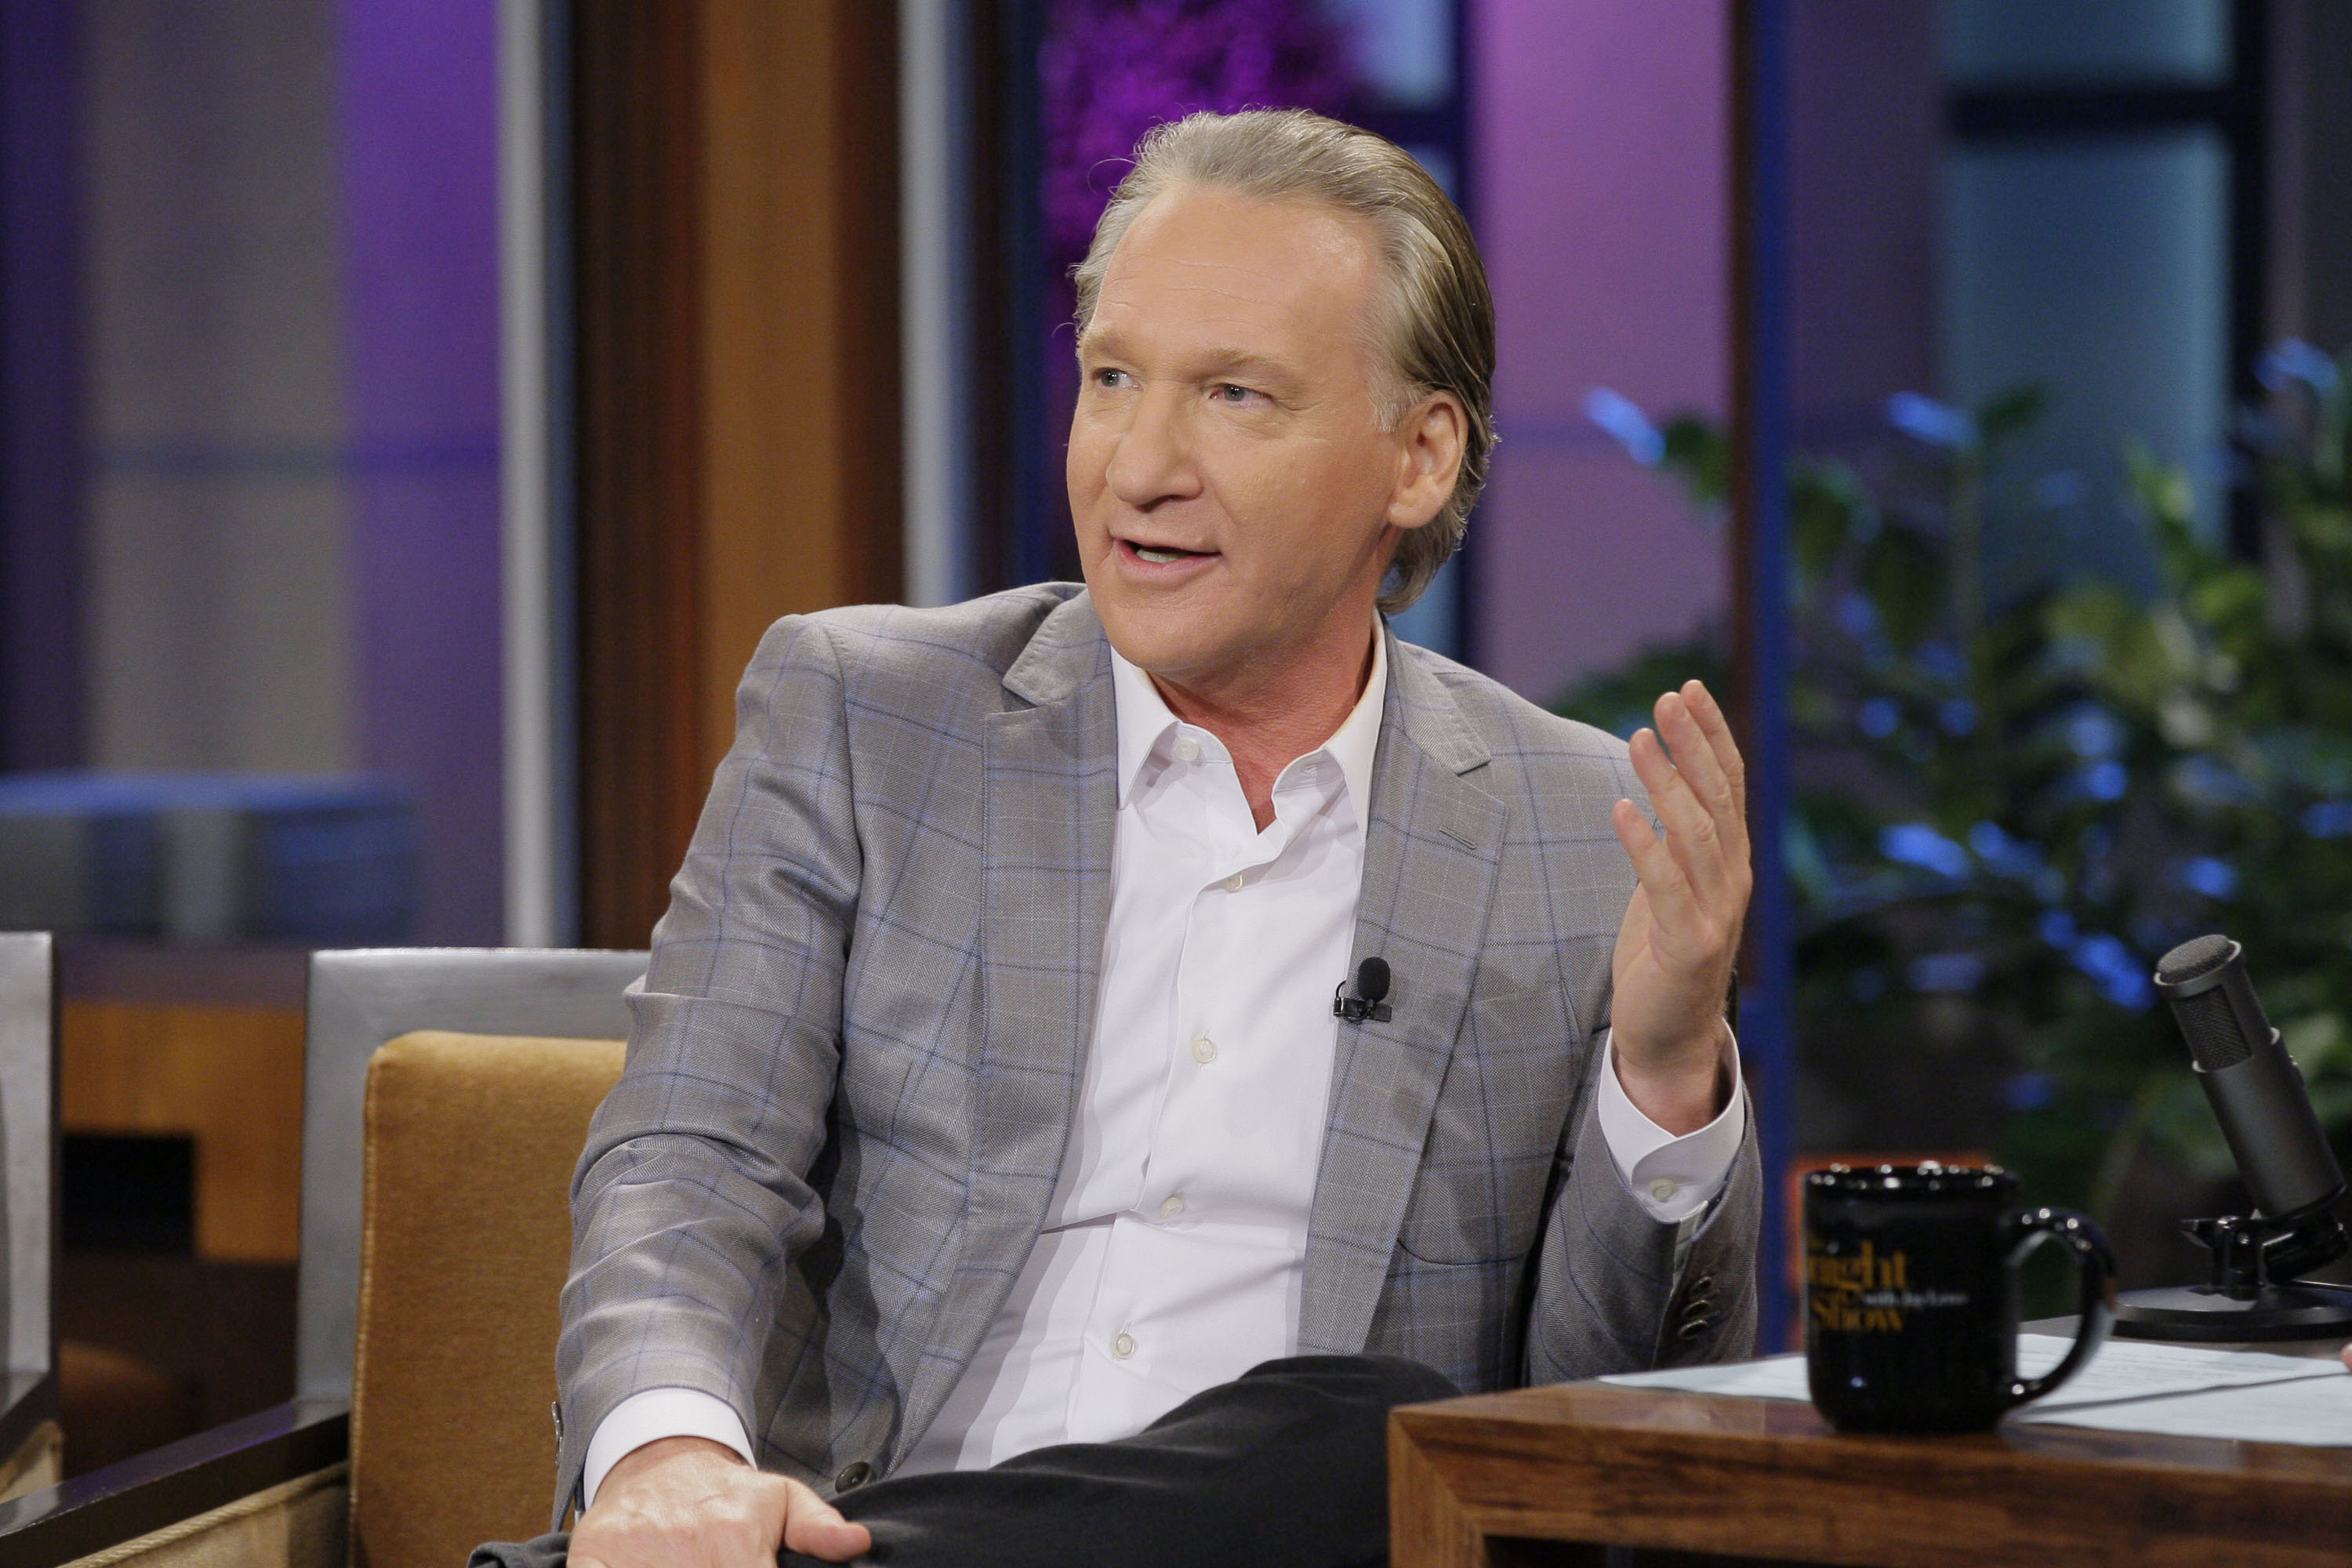 Comedian Bill Maher during an interview with Jay Leno on September 3, 2013.